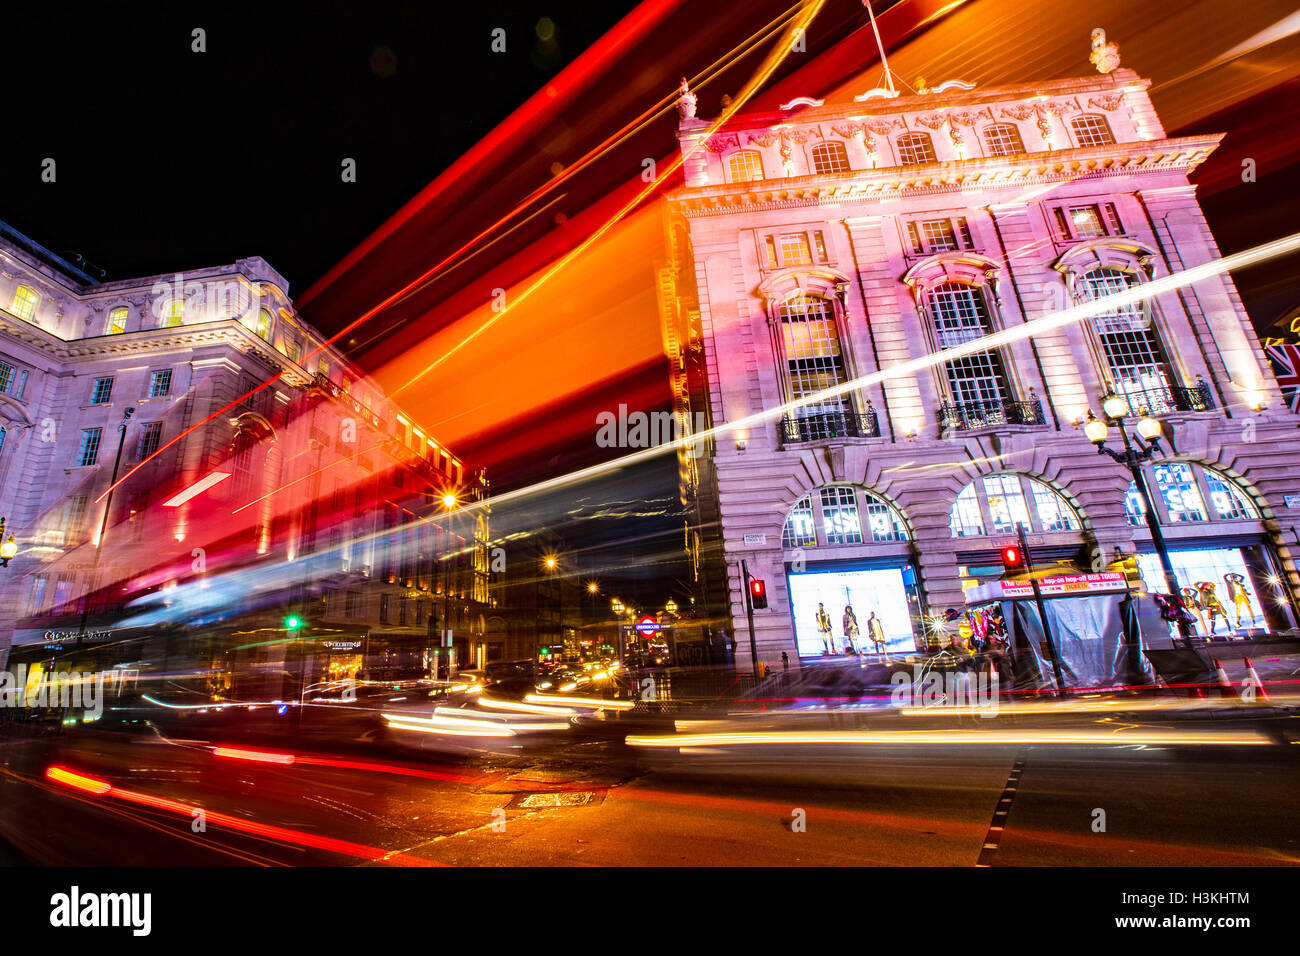 Light Trail Trails at London Piccadilly Circus Stock Photo